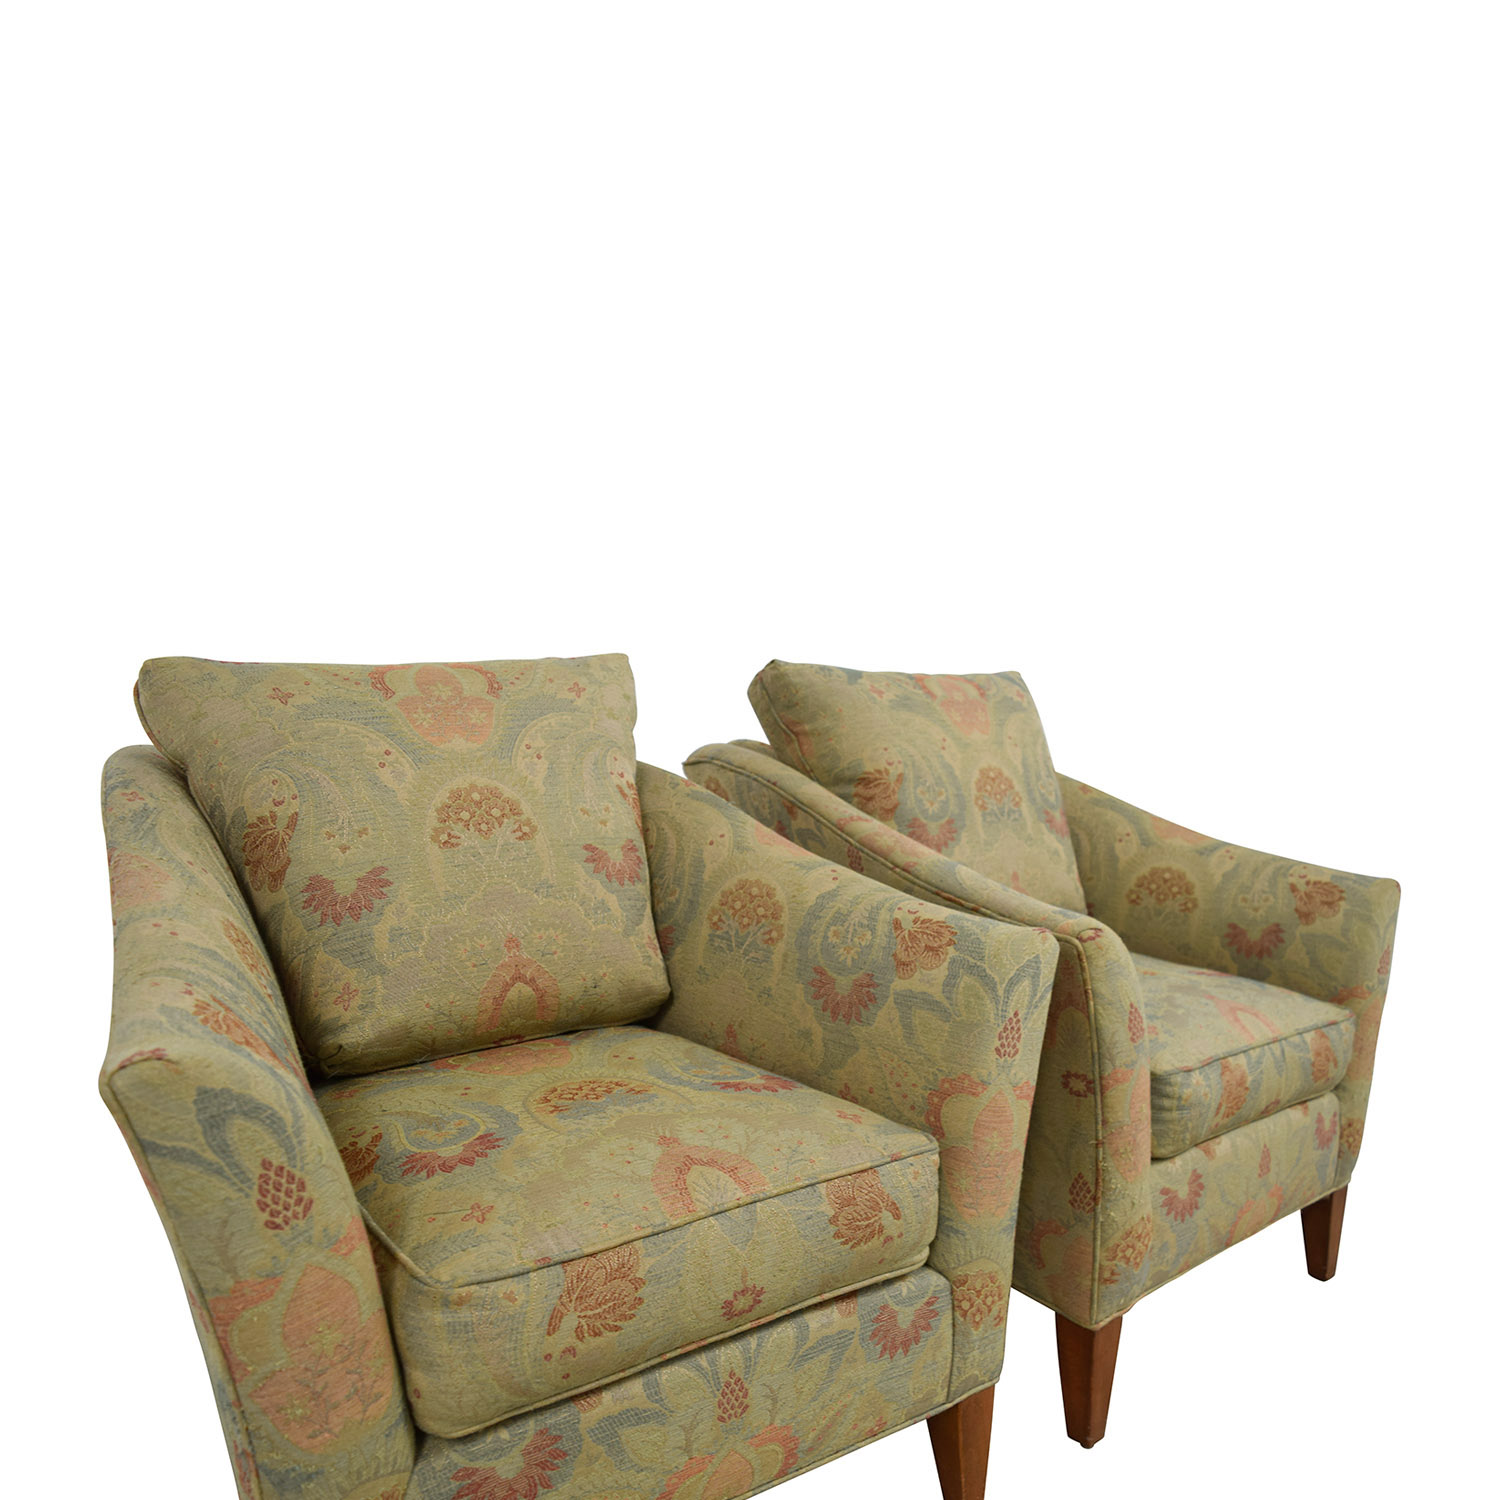 ethan allen recliners chairs exercise while sitting in office chair 90 off gibson floral